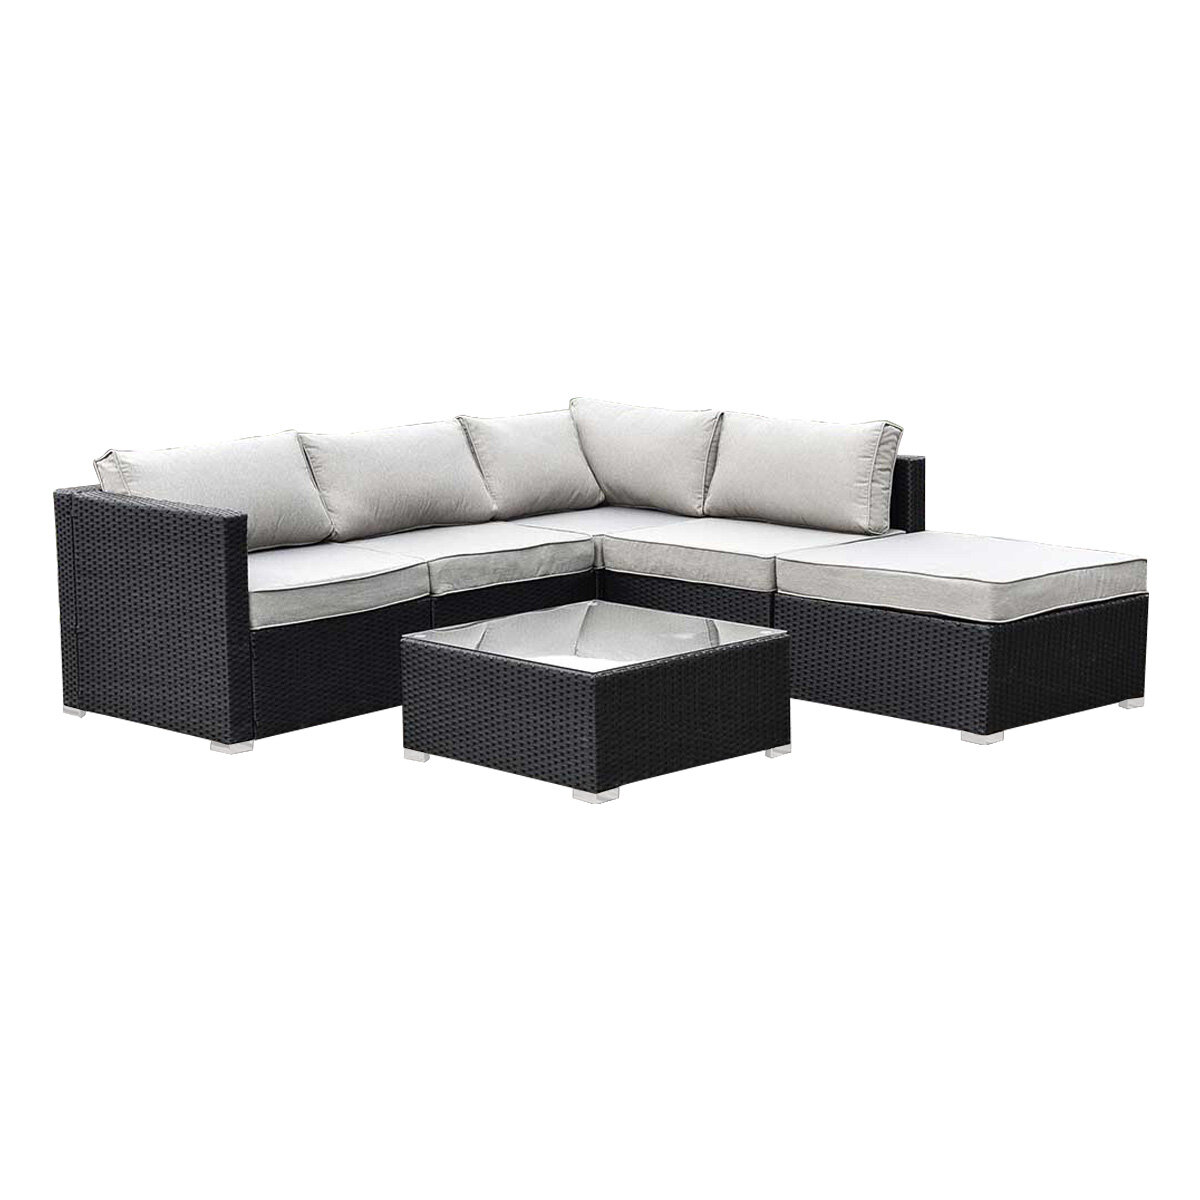 6 Pieces Outdoor Furniture Rattan Set Sofa Lounge Table